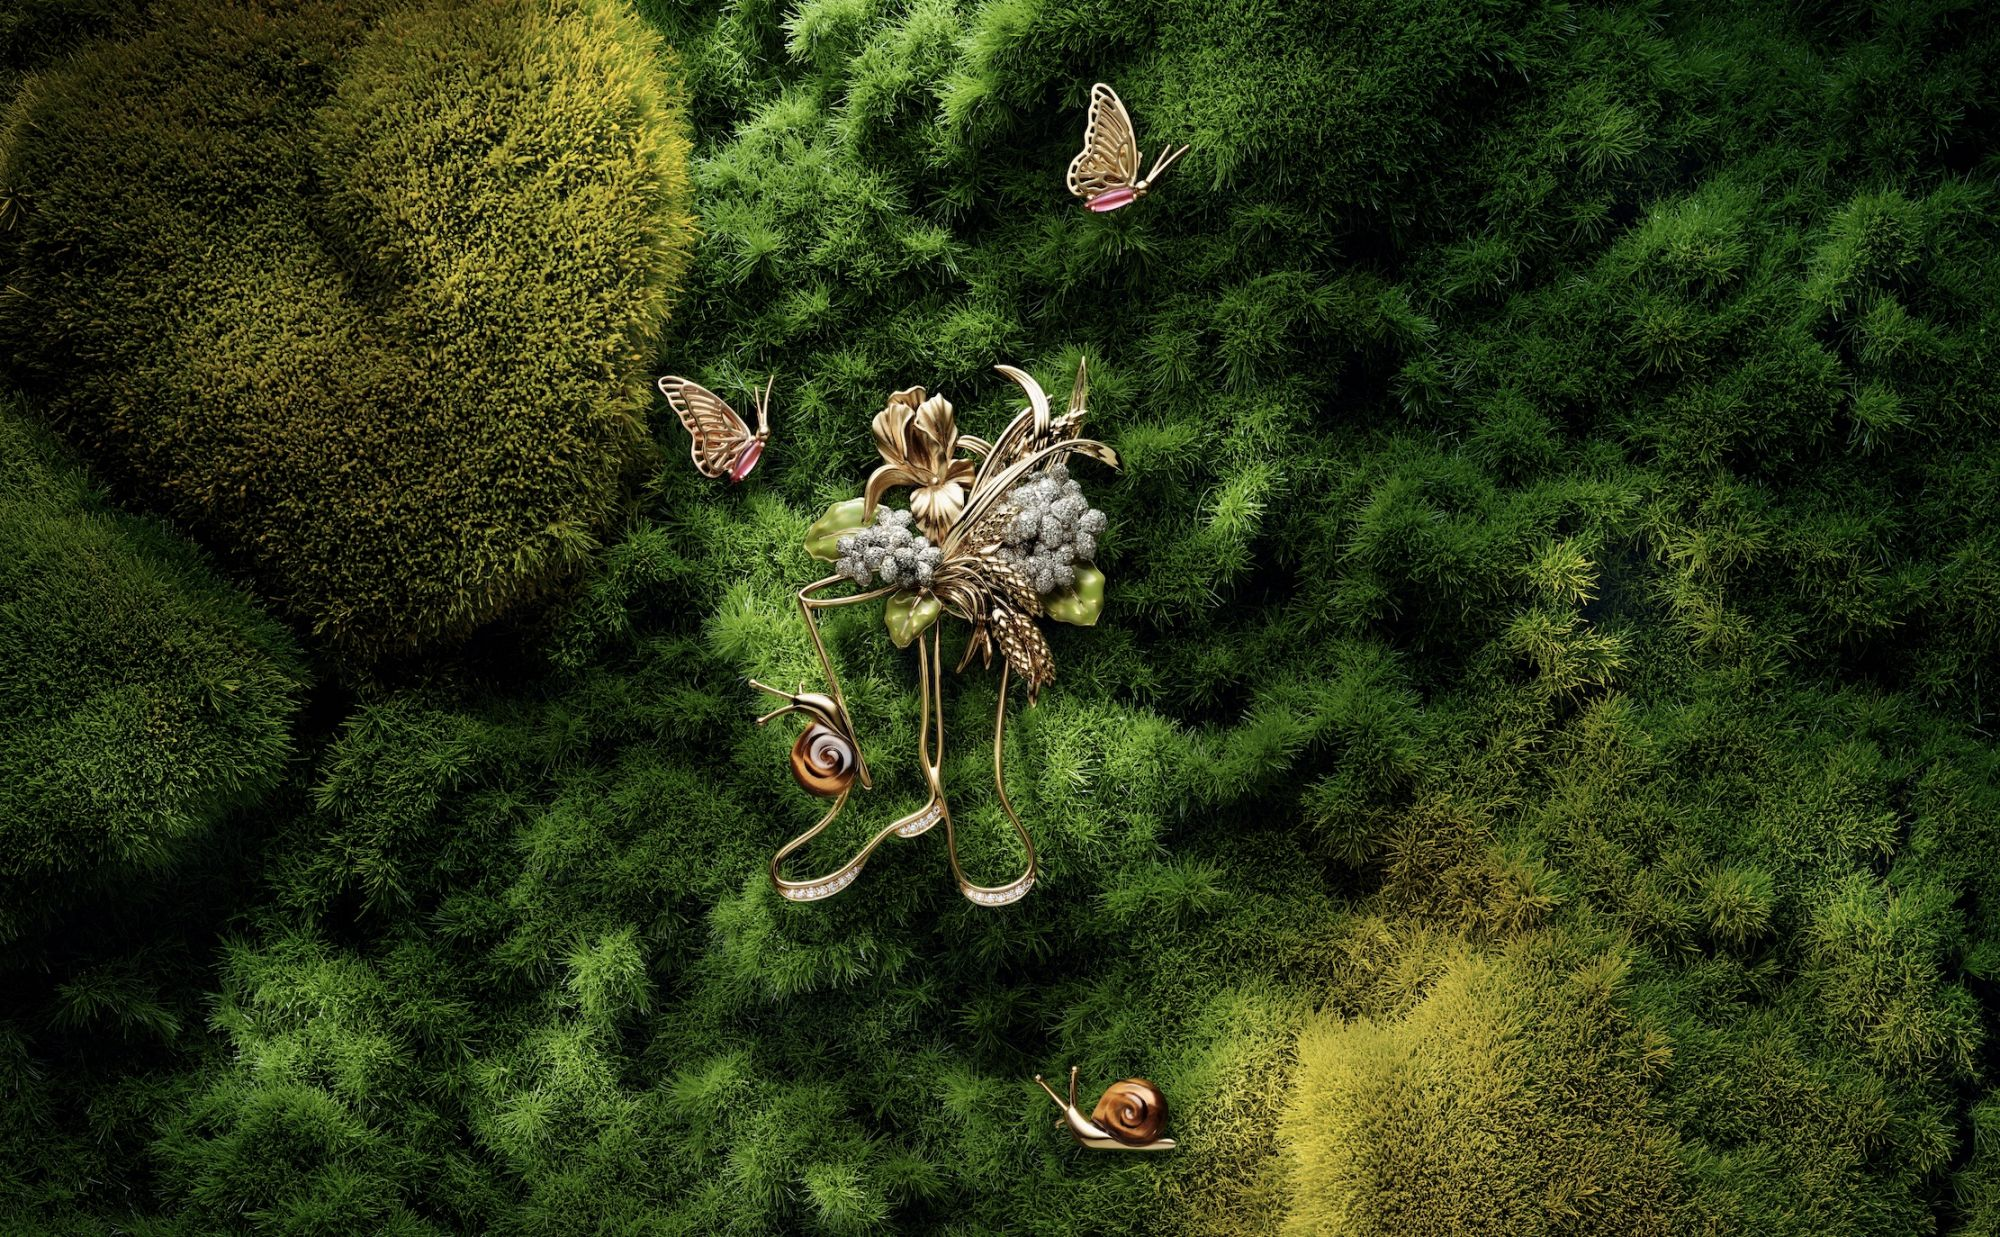 Chaumet's Garden of Earthly Delights Is A Brilliant Celebration of Nature